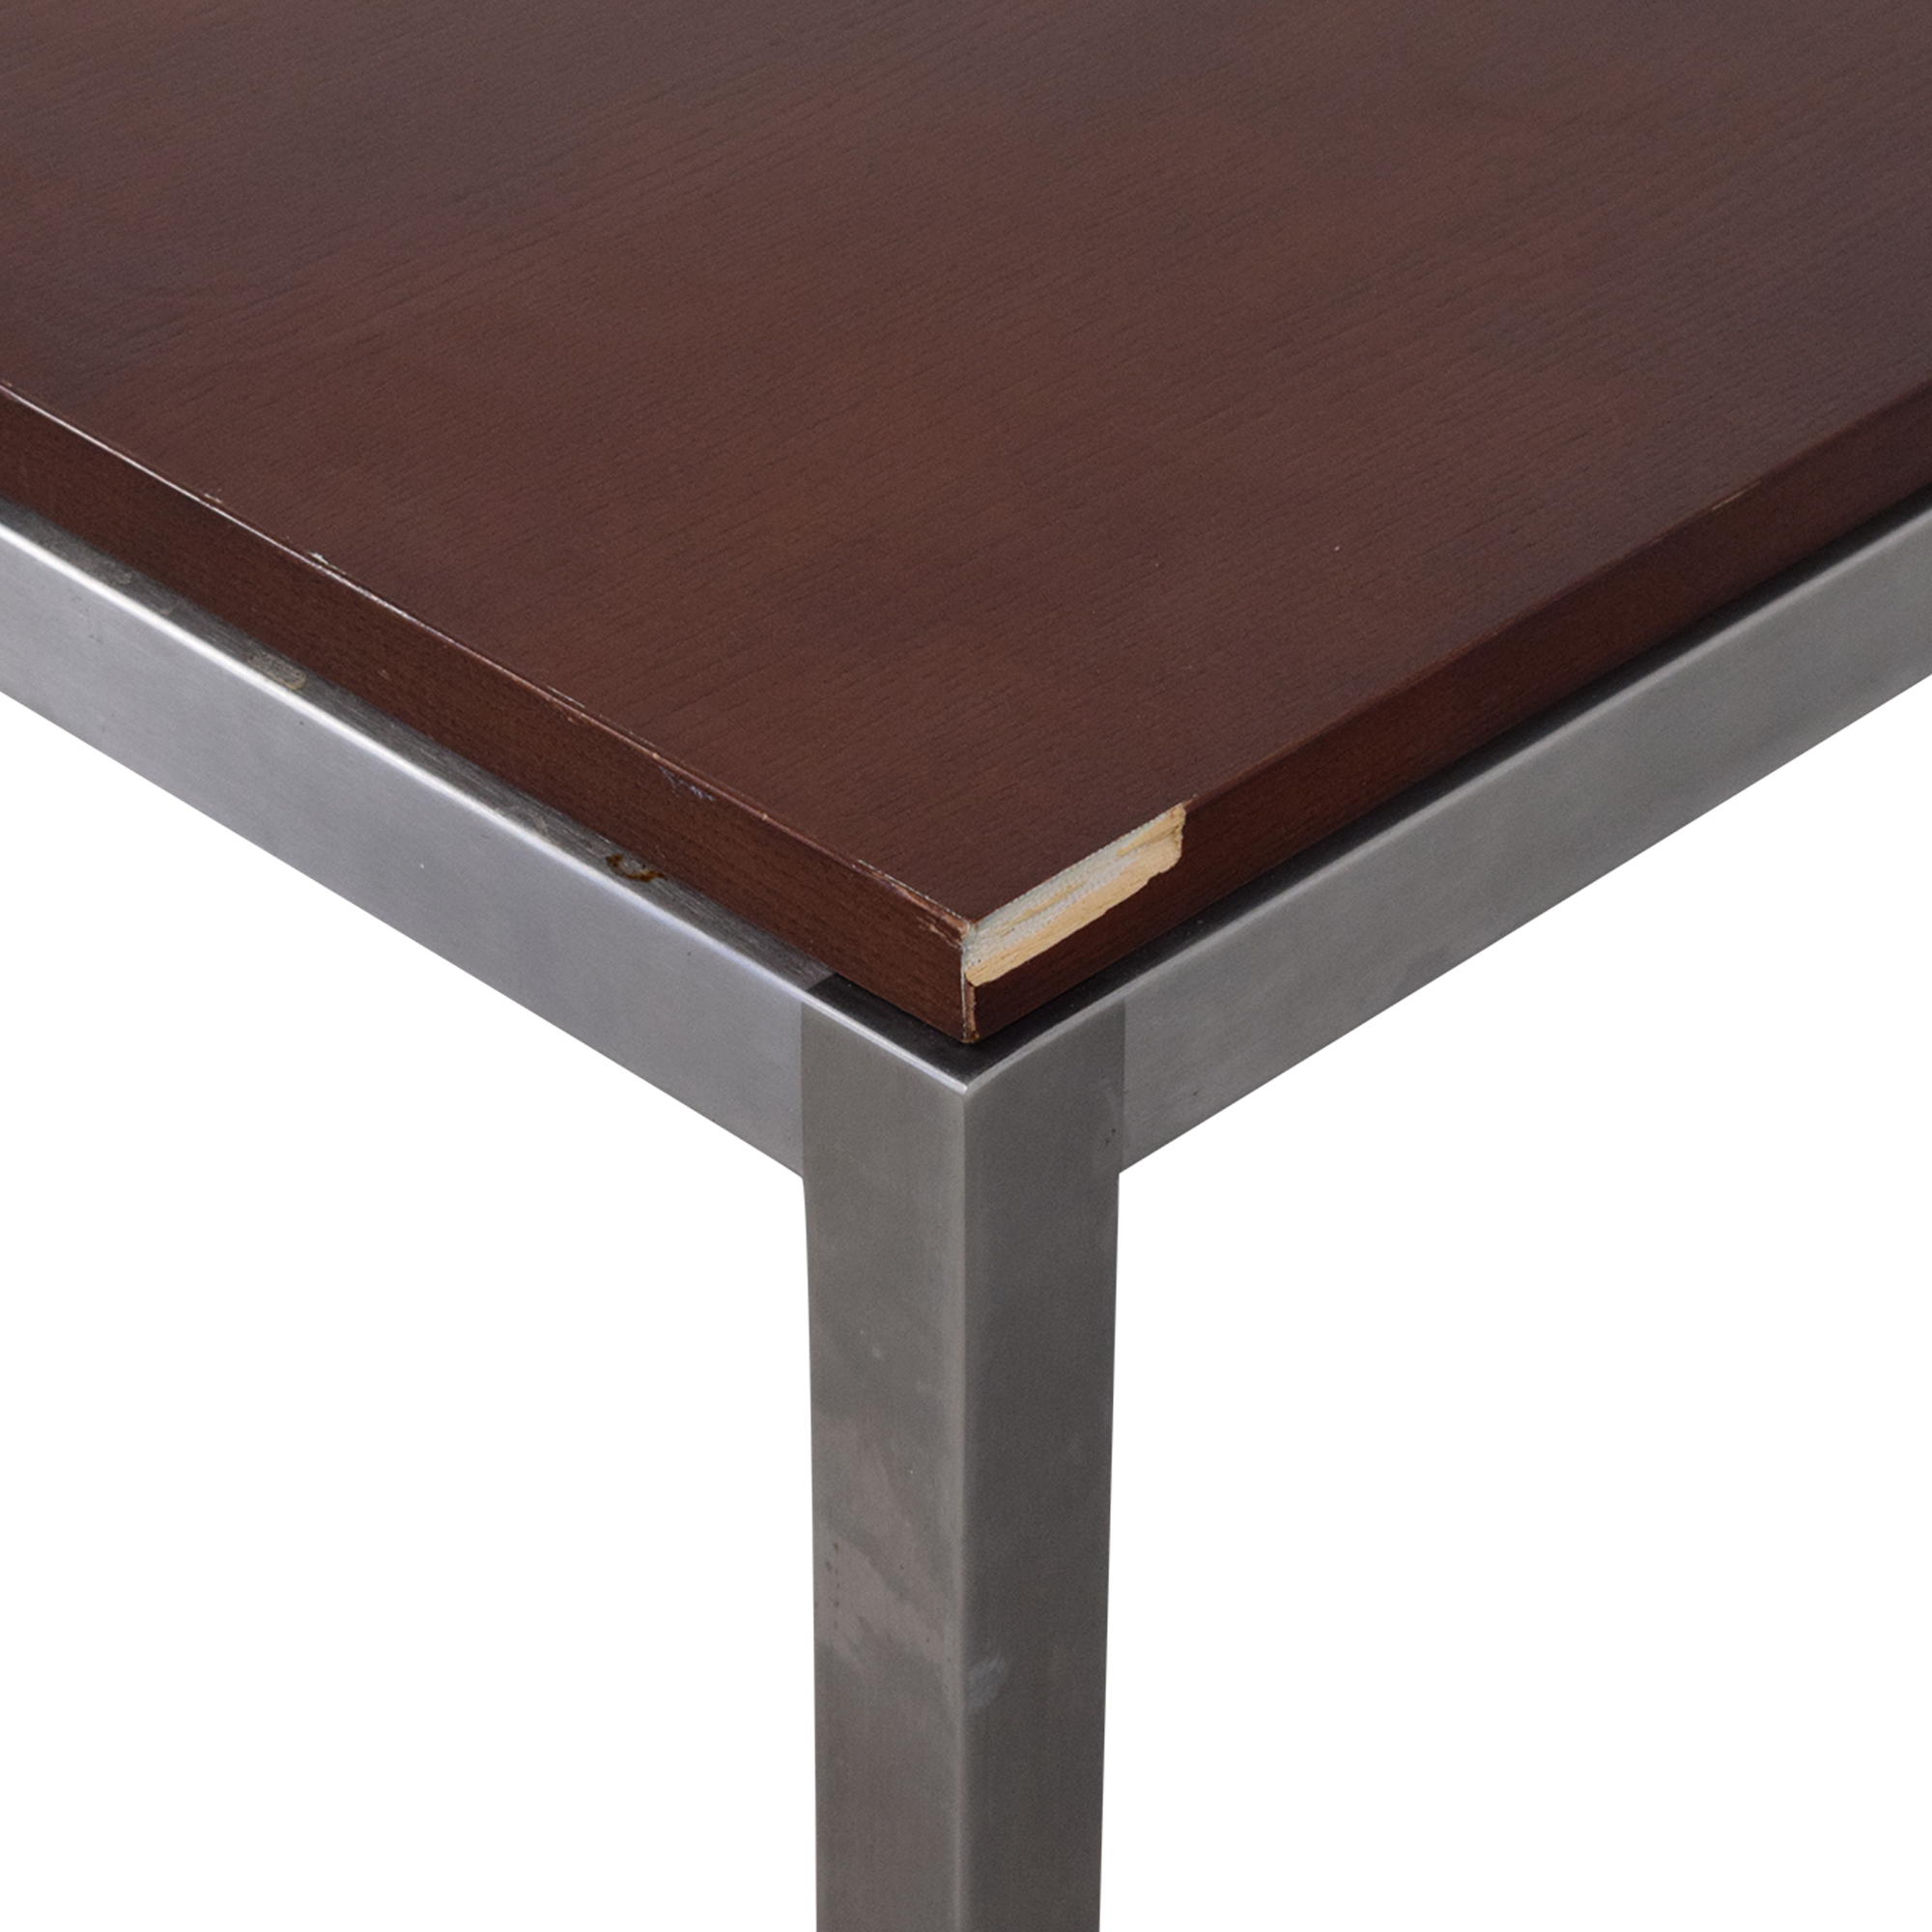 Ethan Allen Wood and Chrome Dining Table / Tables